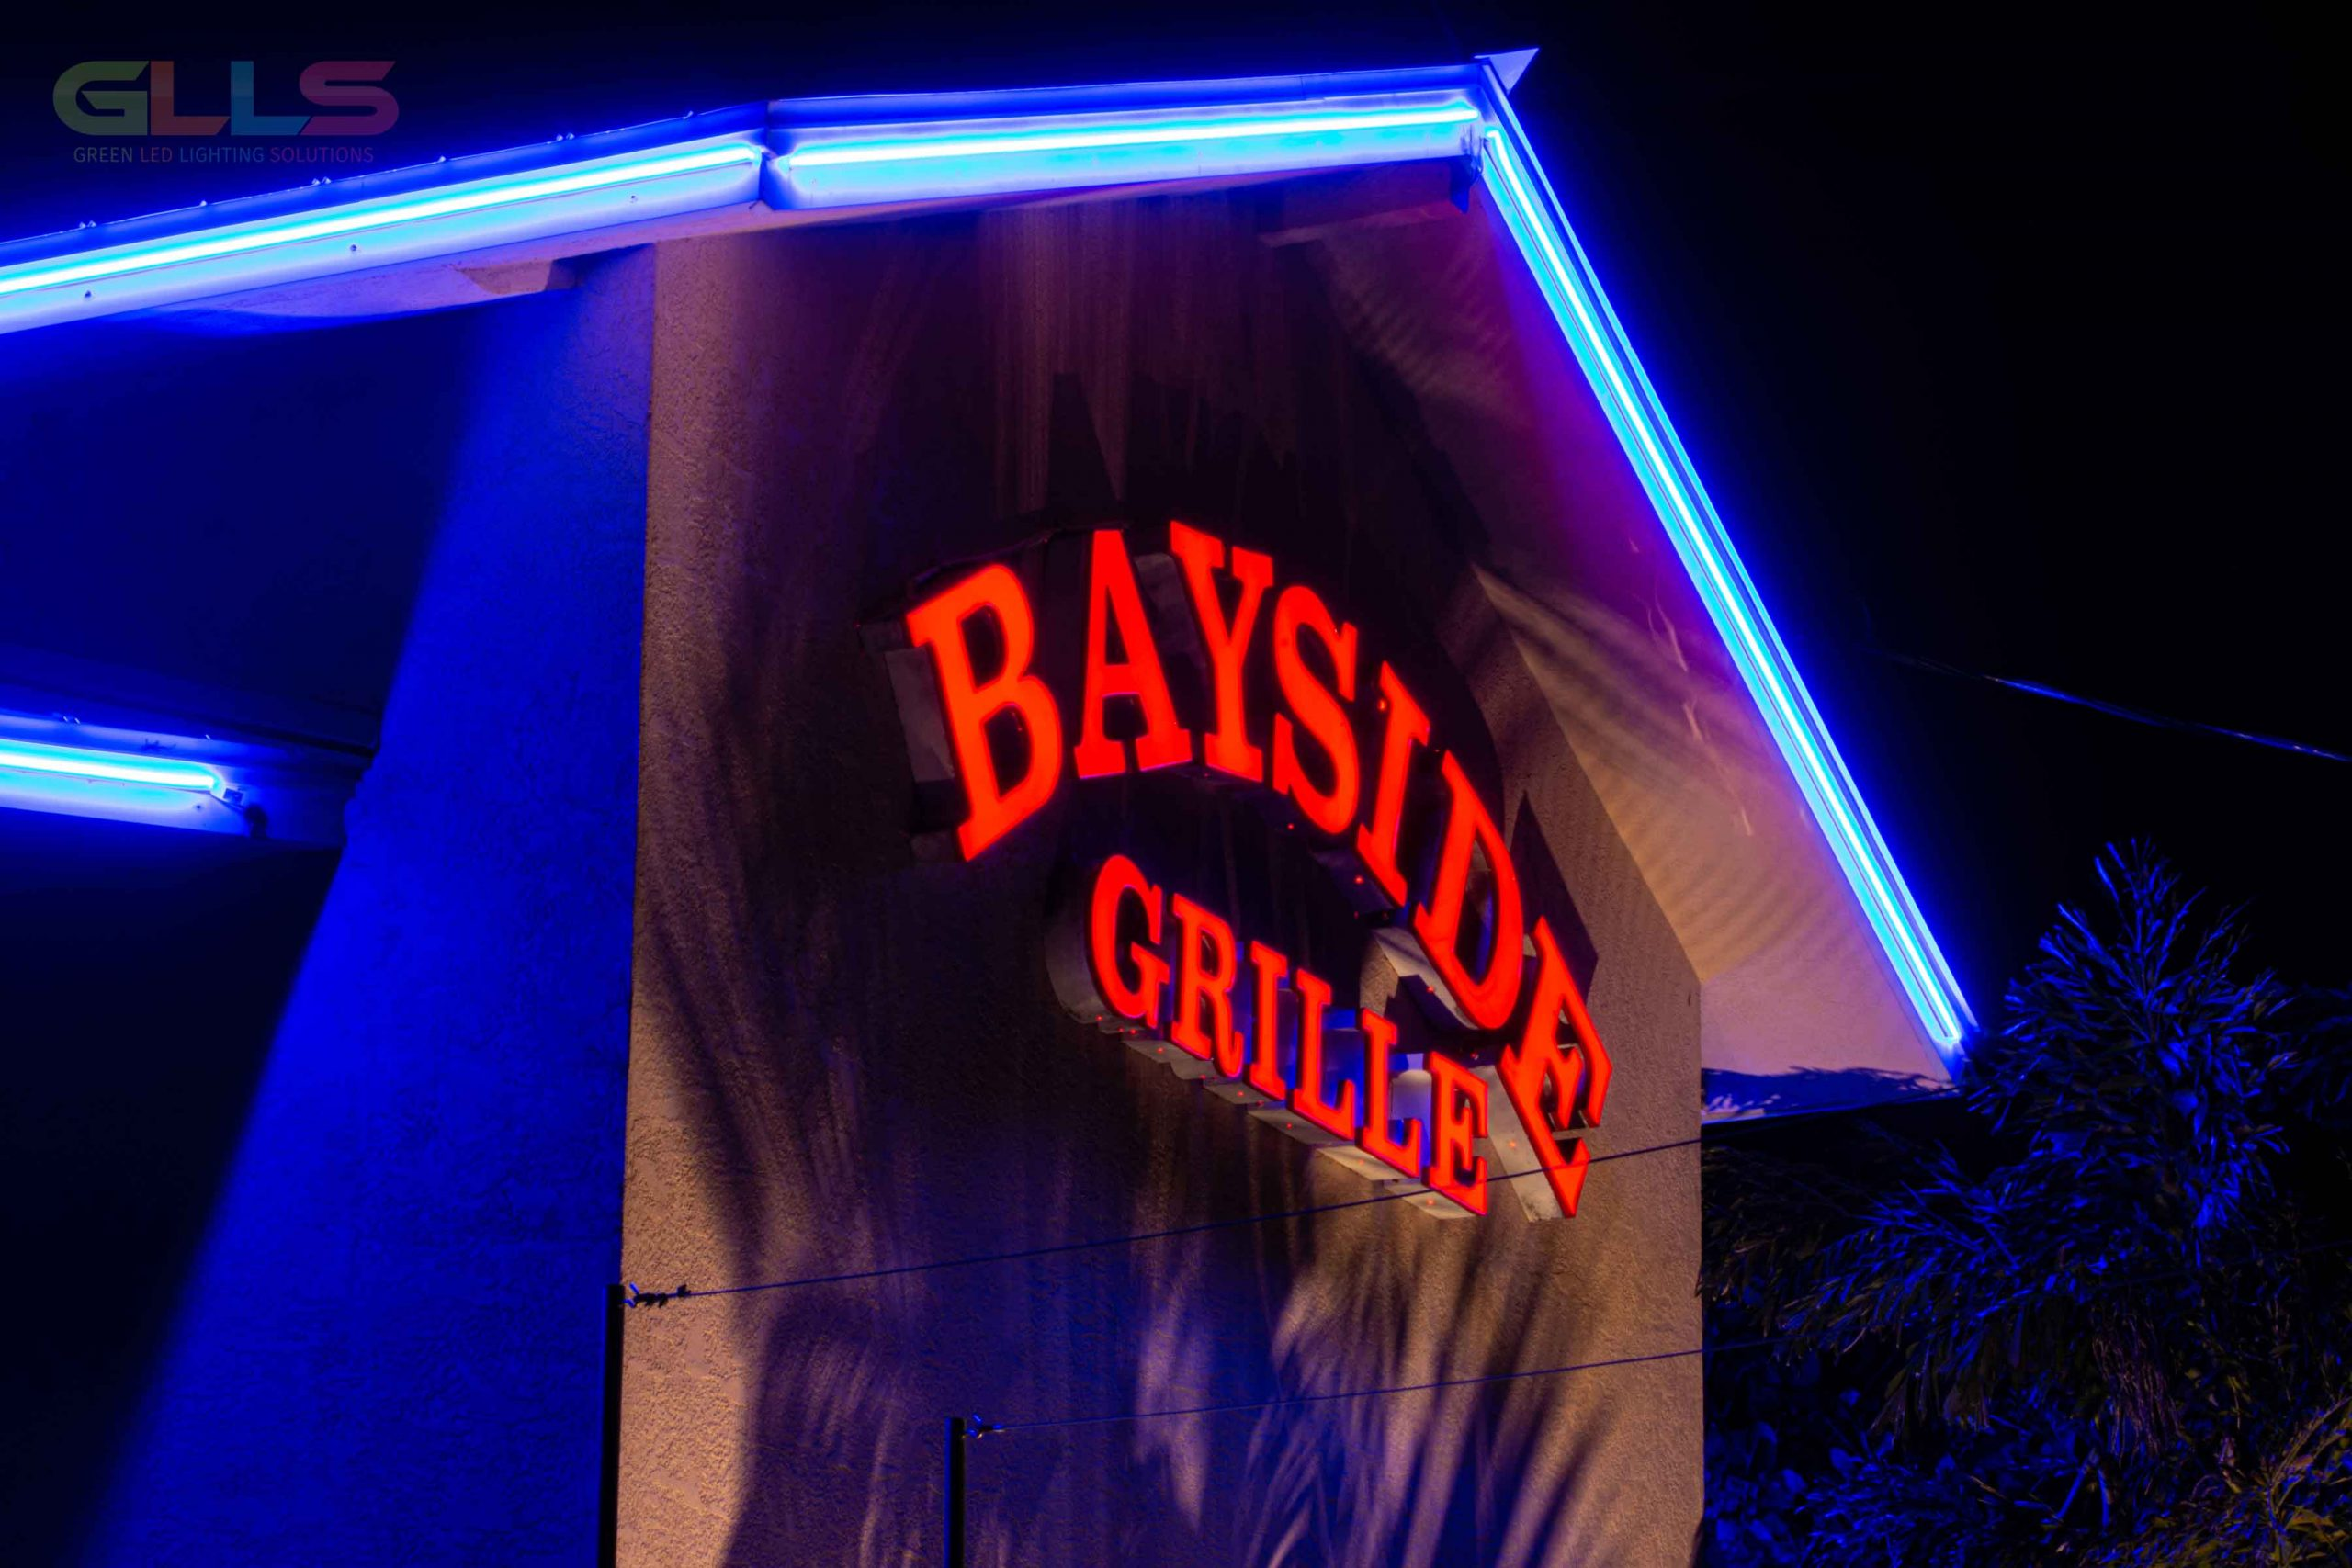 Bayside-Grill-Front-Building14